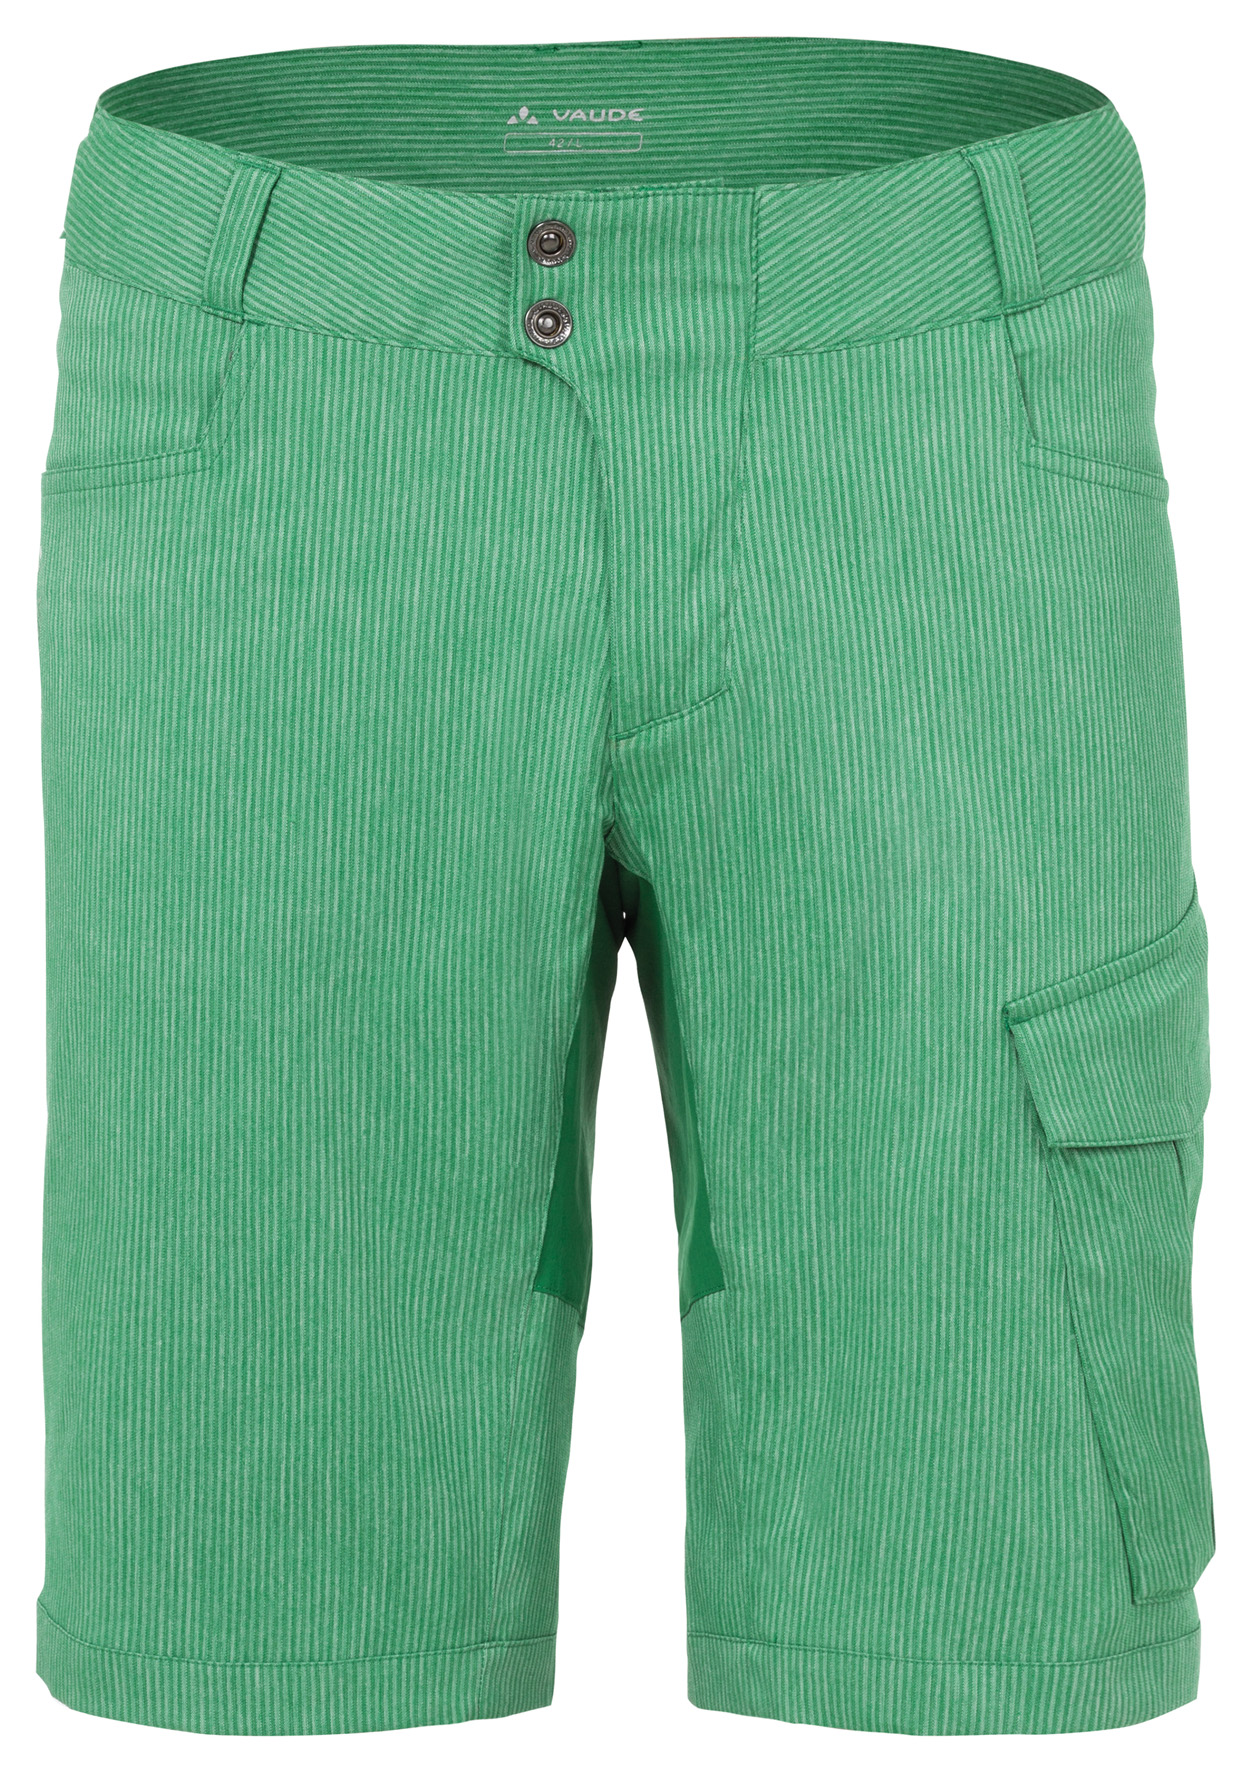 Men´s Tremalzo Shorts yucca green Größe S - schneider-sports